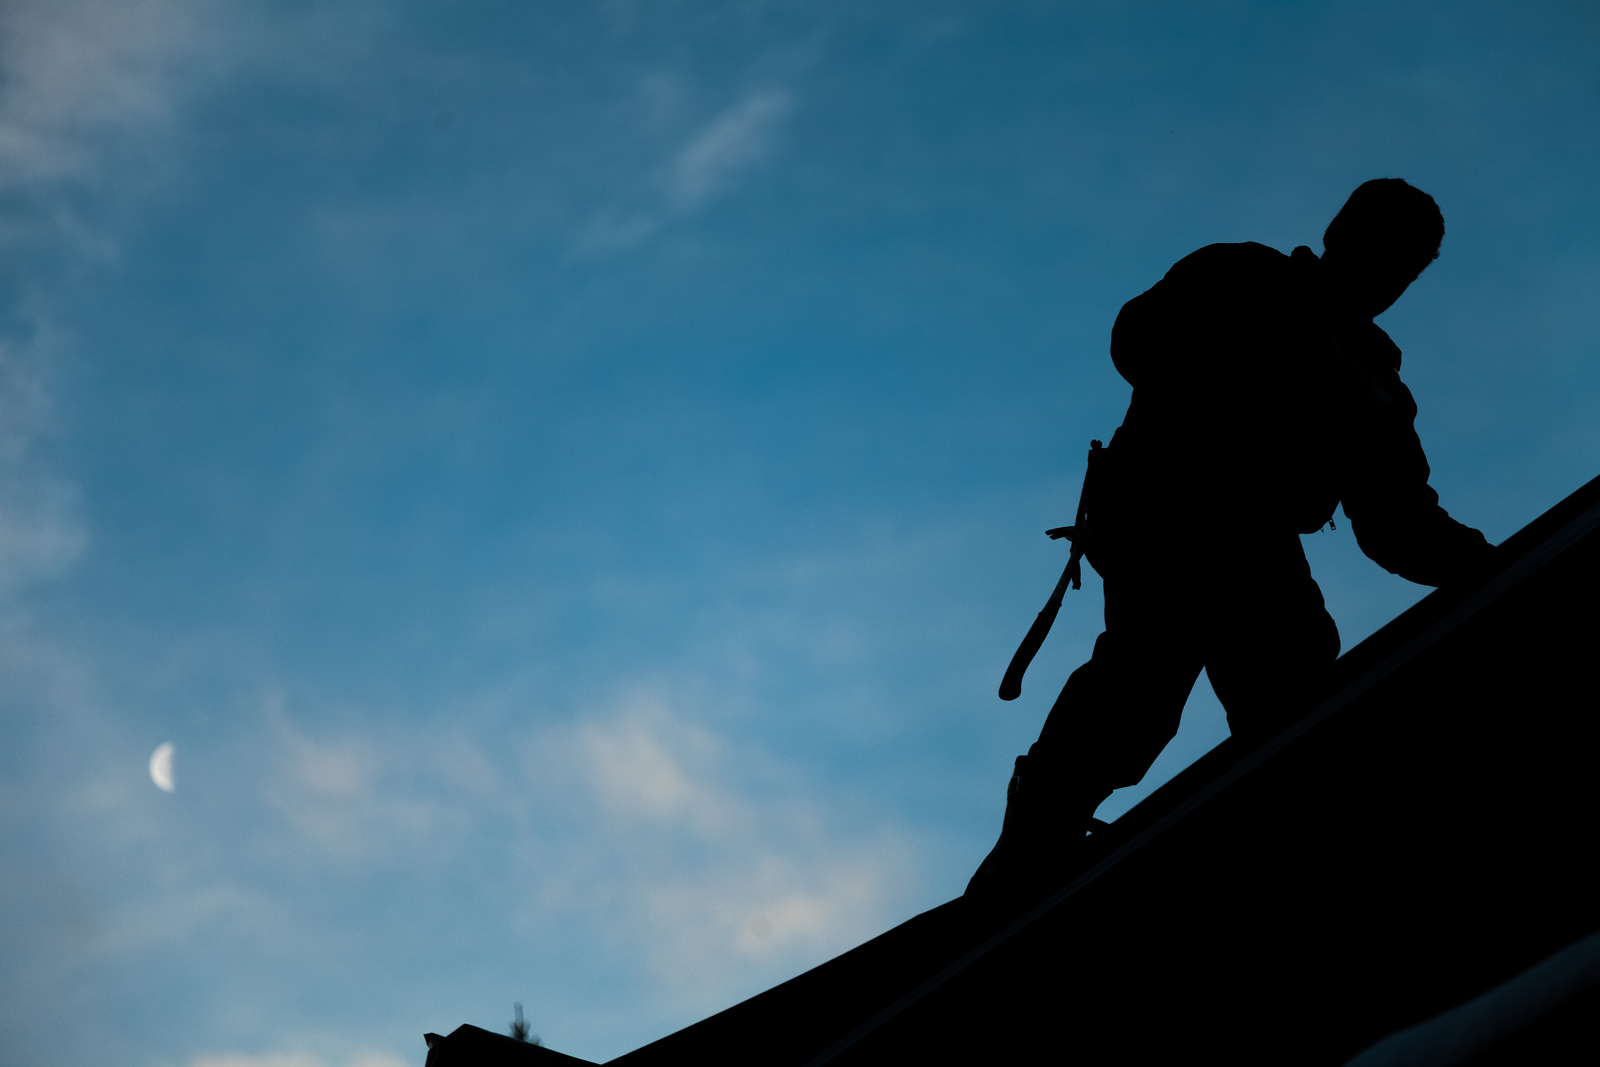 Silhouette of man working on roof